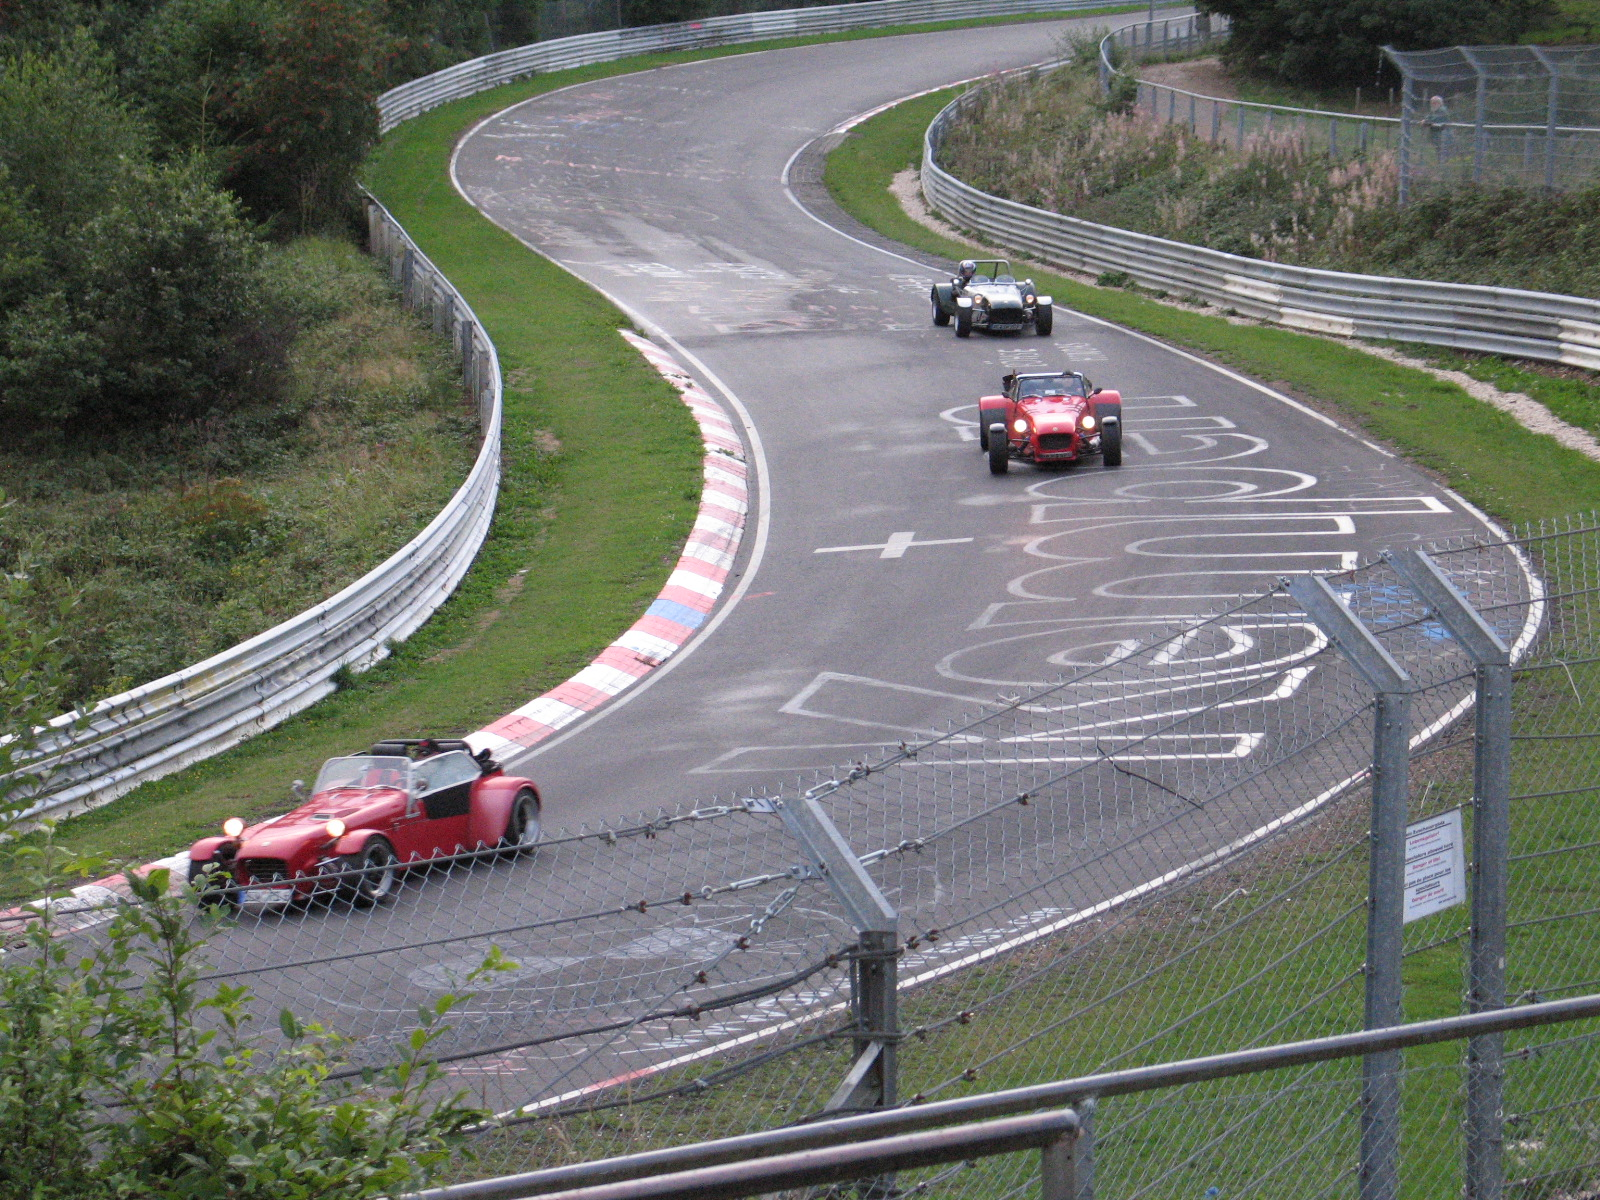 The Nurburgring Has Been Sold For The Second Time This Year, To A Russian Billionaire